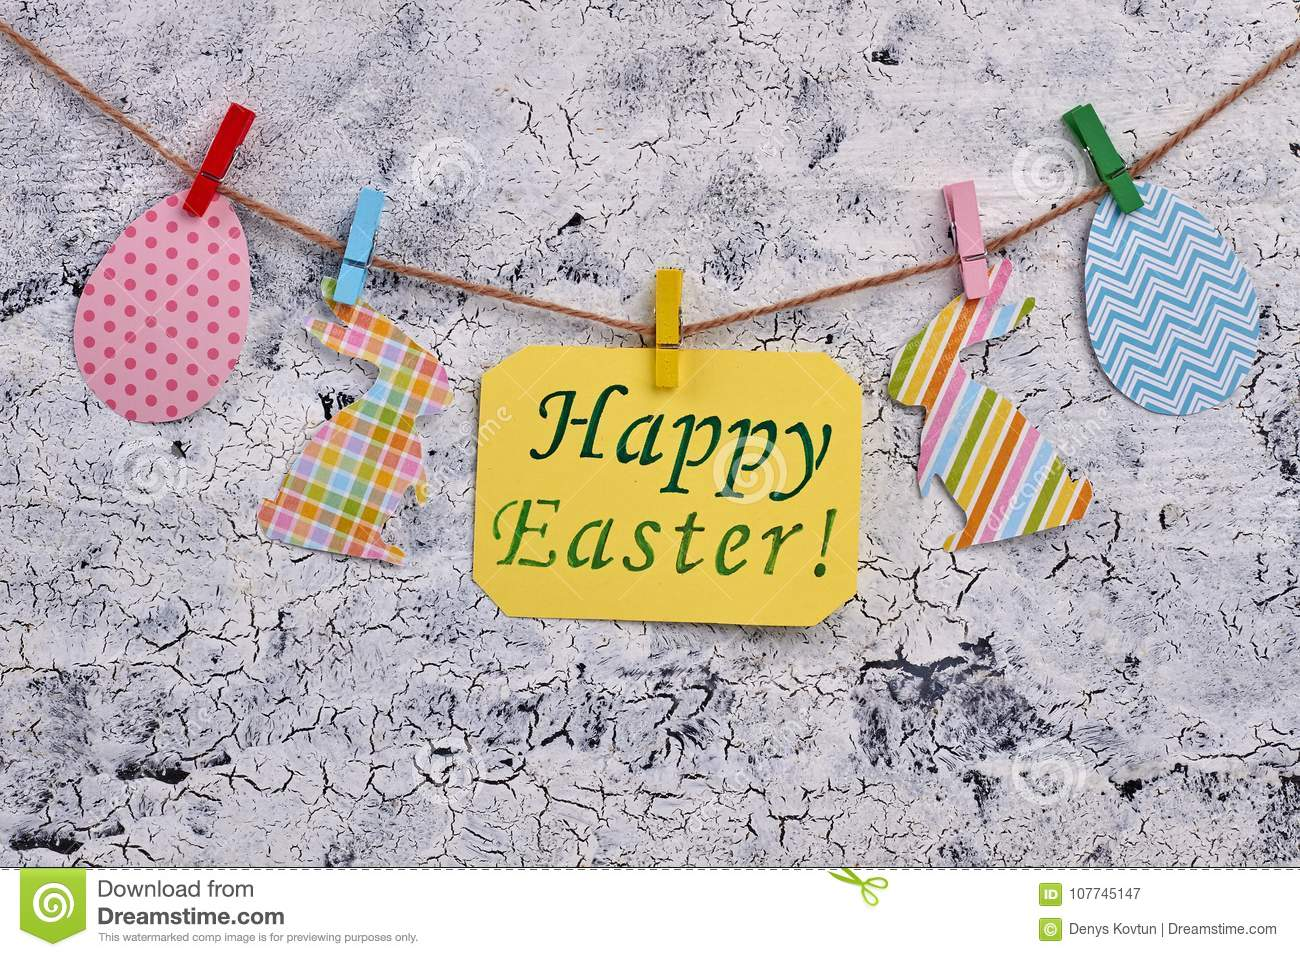 Happy Easter message and paper figurines.